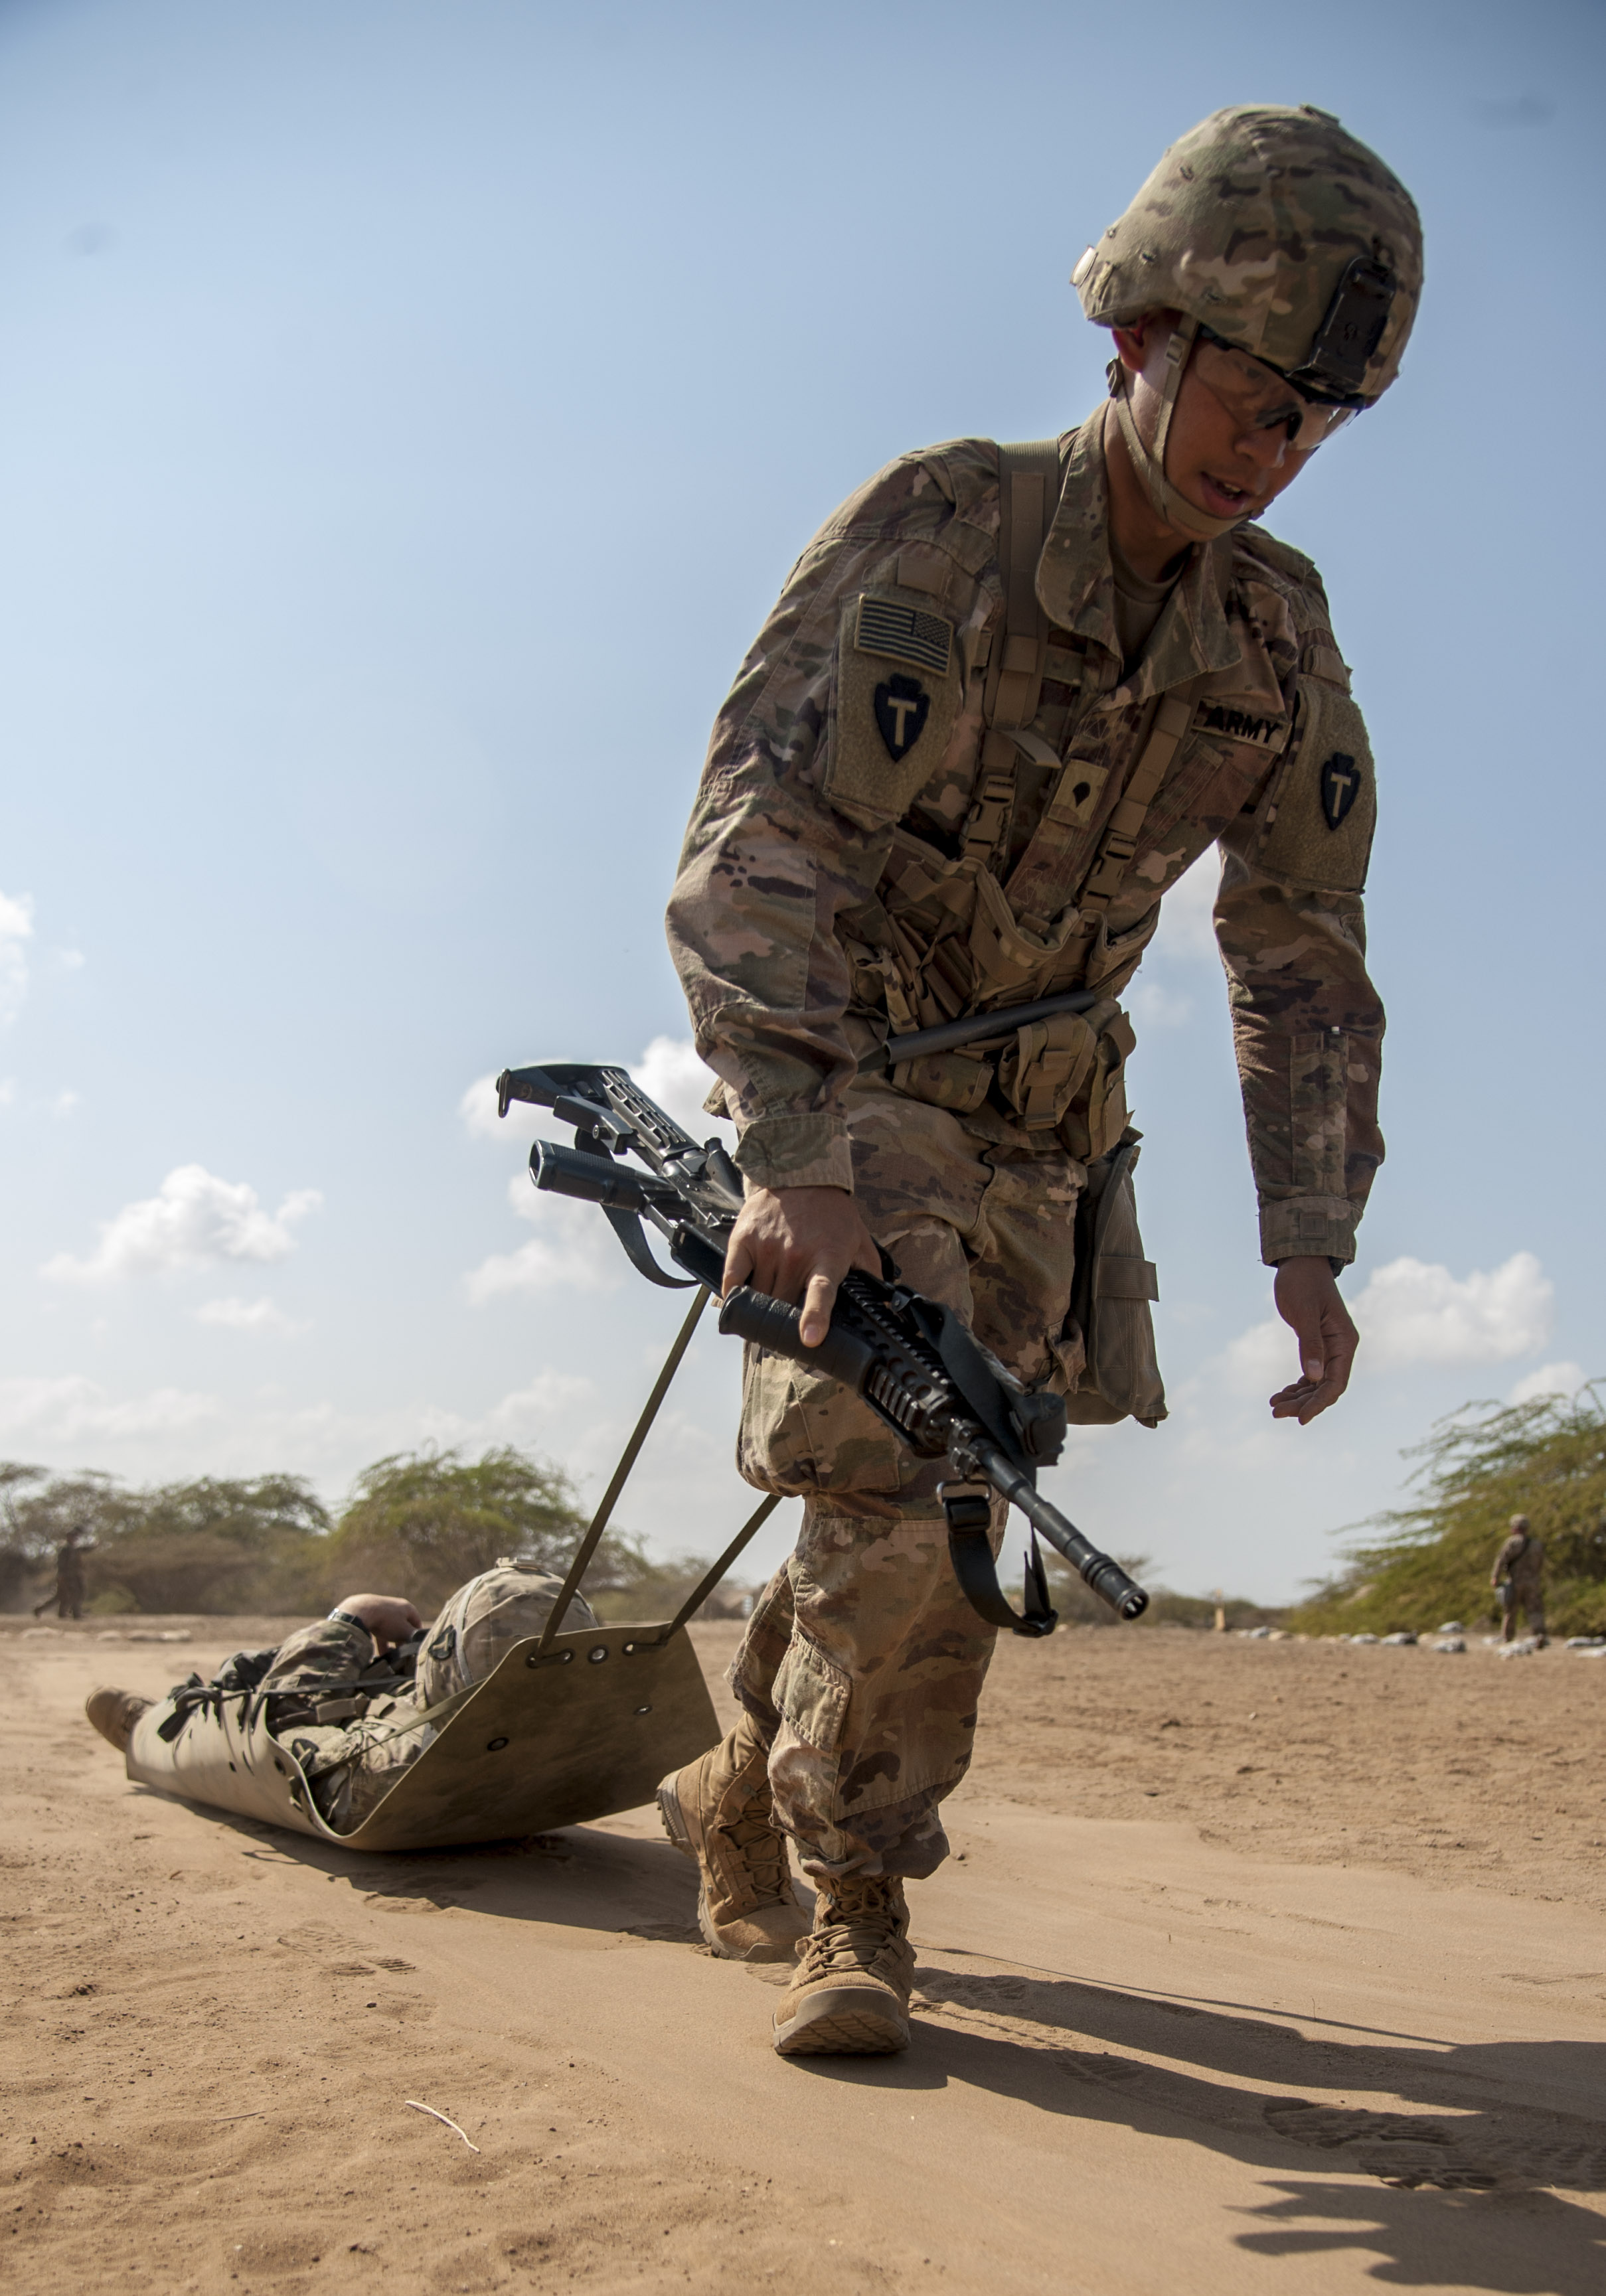 A U.S. Army Soldier assigned to Combined Joint Task Force - Horn of Africa practices the Objective Bull, a task that requires the evacuation and treatment of a casualty, in preparation for an Expert Infantryman Badge (EIB) evaluation at Camp Lemonnier, Djibouti, Jan. 22, 2018. The EIB is a coveted special skills badge that requires infantry Soldiers to pass a five-day evaluation that consists of an Army Physical Fitness Test, day and night land navigation, a 12-mile forced march, and 30 individual tasks covering weapons, medical, and security patrol skills. In an April 2016 EIB iteration at Camp Lemonnier, only 15 percent of candidates earned the badge. (U.S. Air Force photo by Staff Sgt. Timothy Moore)